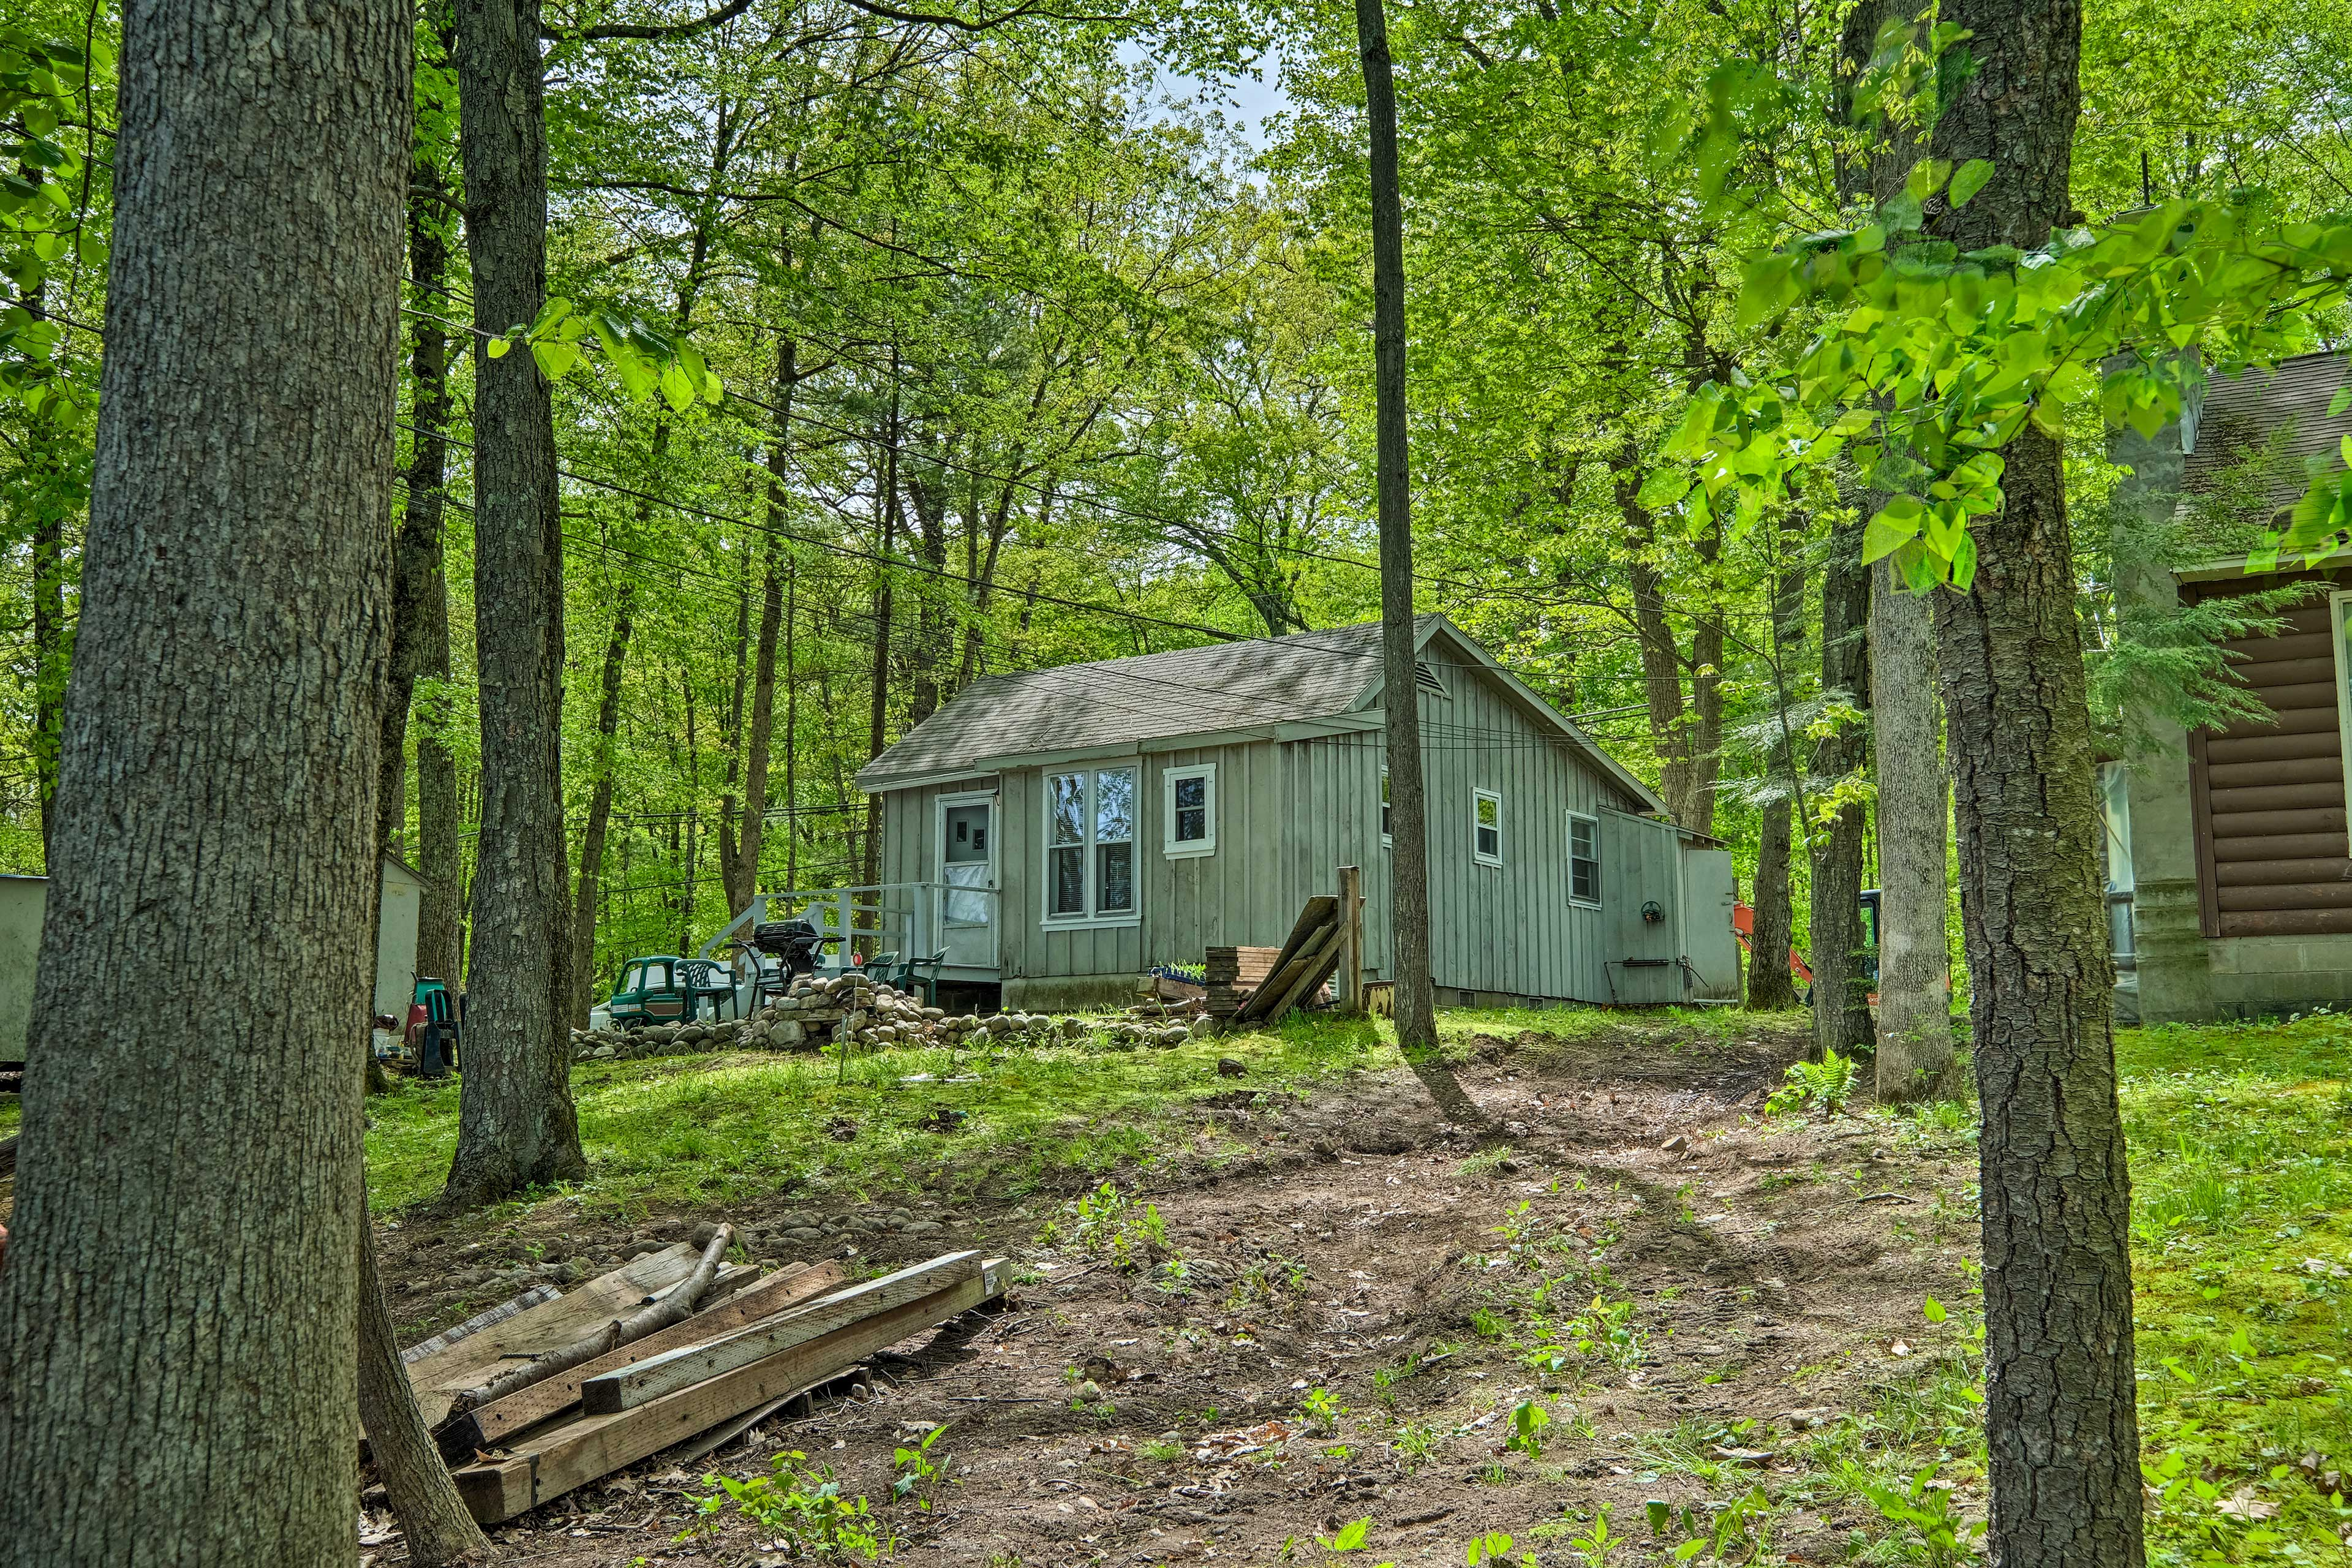 This cottage may seem secluded, but is only a couple miles from attractions!